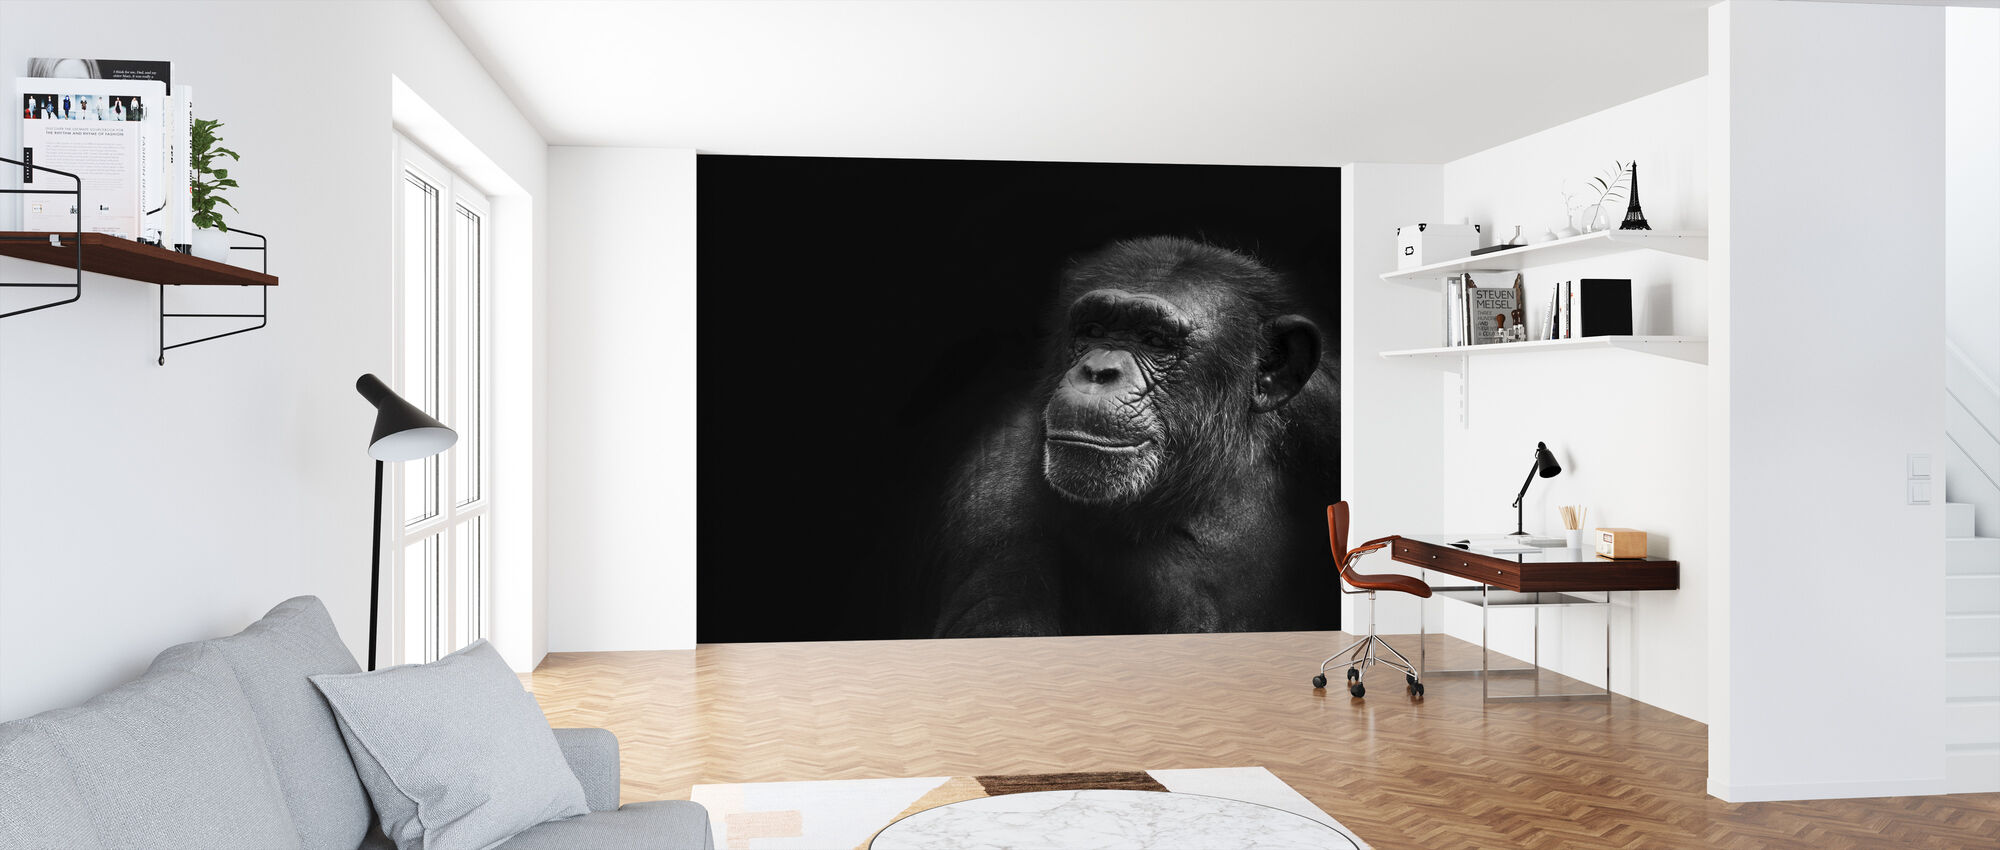 Monkey and Black - Wallpaper - Office